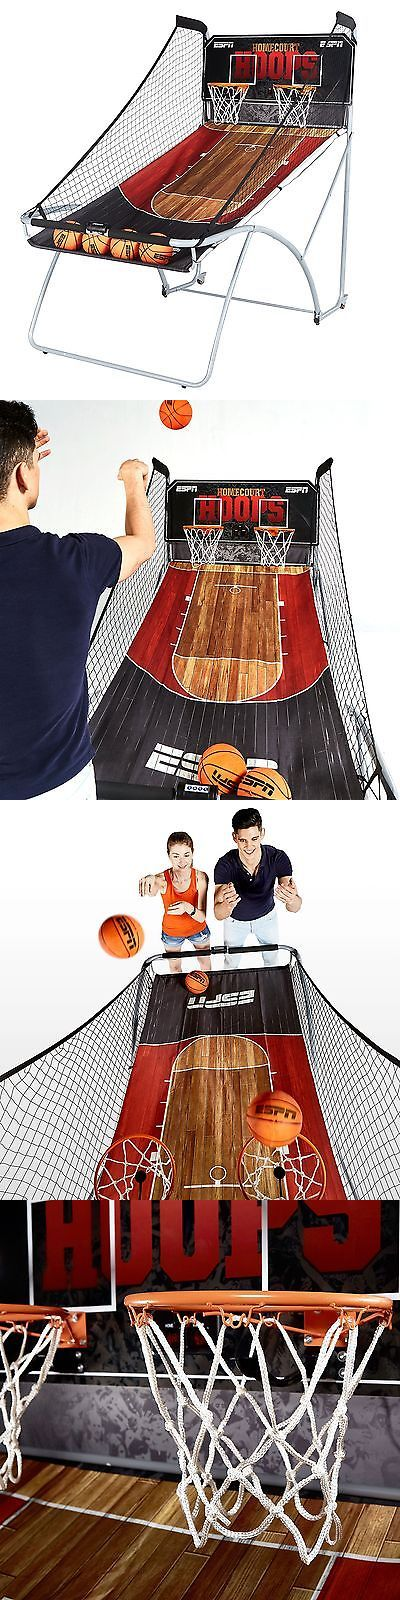 Other Indoor Games 36278: Espn Ez Fold Indoor Basketball Game For 2 Players With Led Sco... 2-Day Delivery -> BUY IT NOW ONLY: $178.78 on eBay!